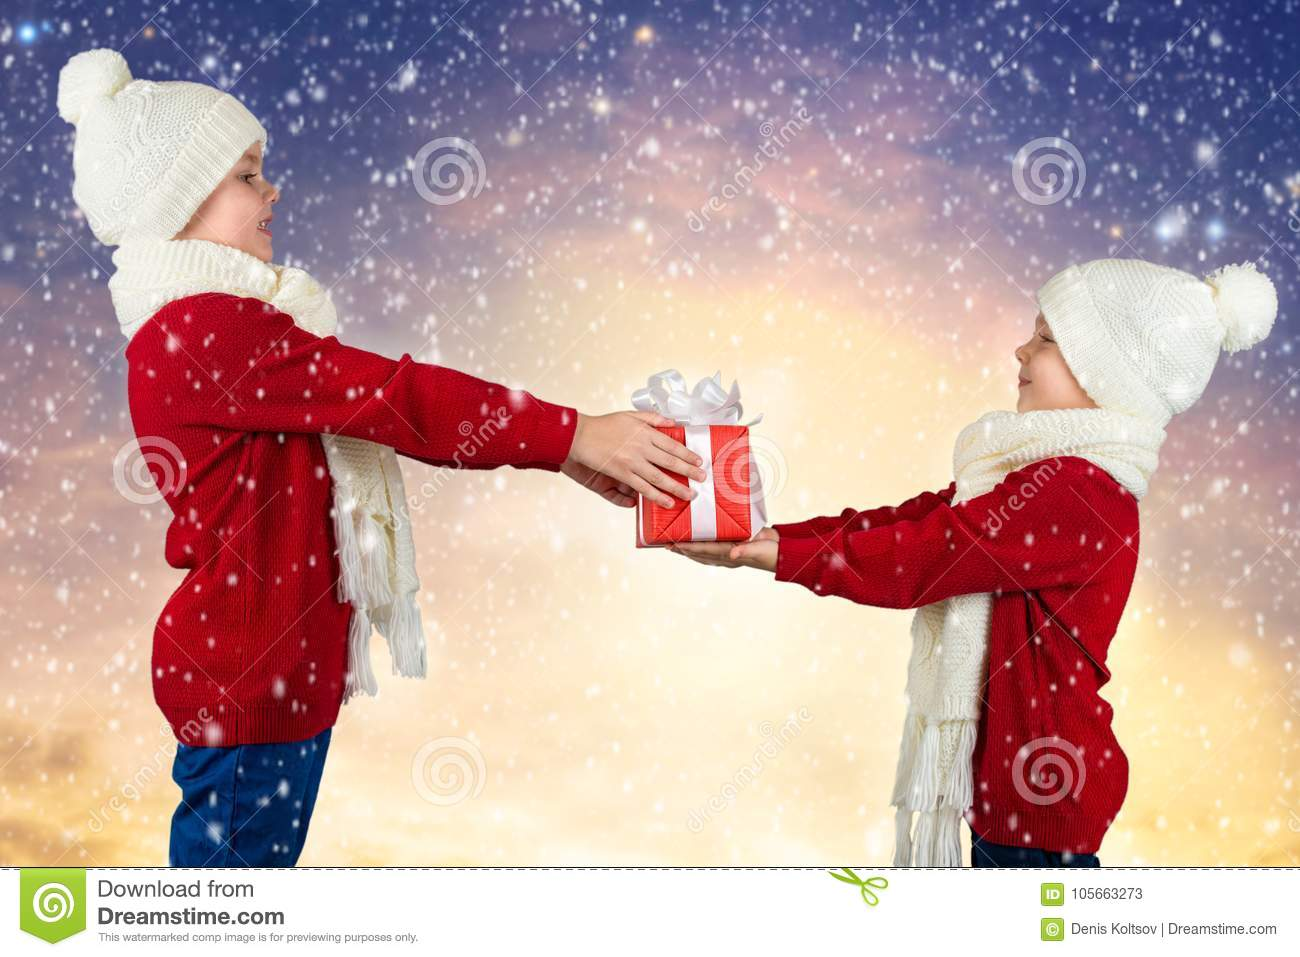 Merry Christmas Brother.Merry Christmas And Happy Holidays The Elder Brother Gives